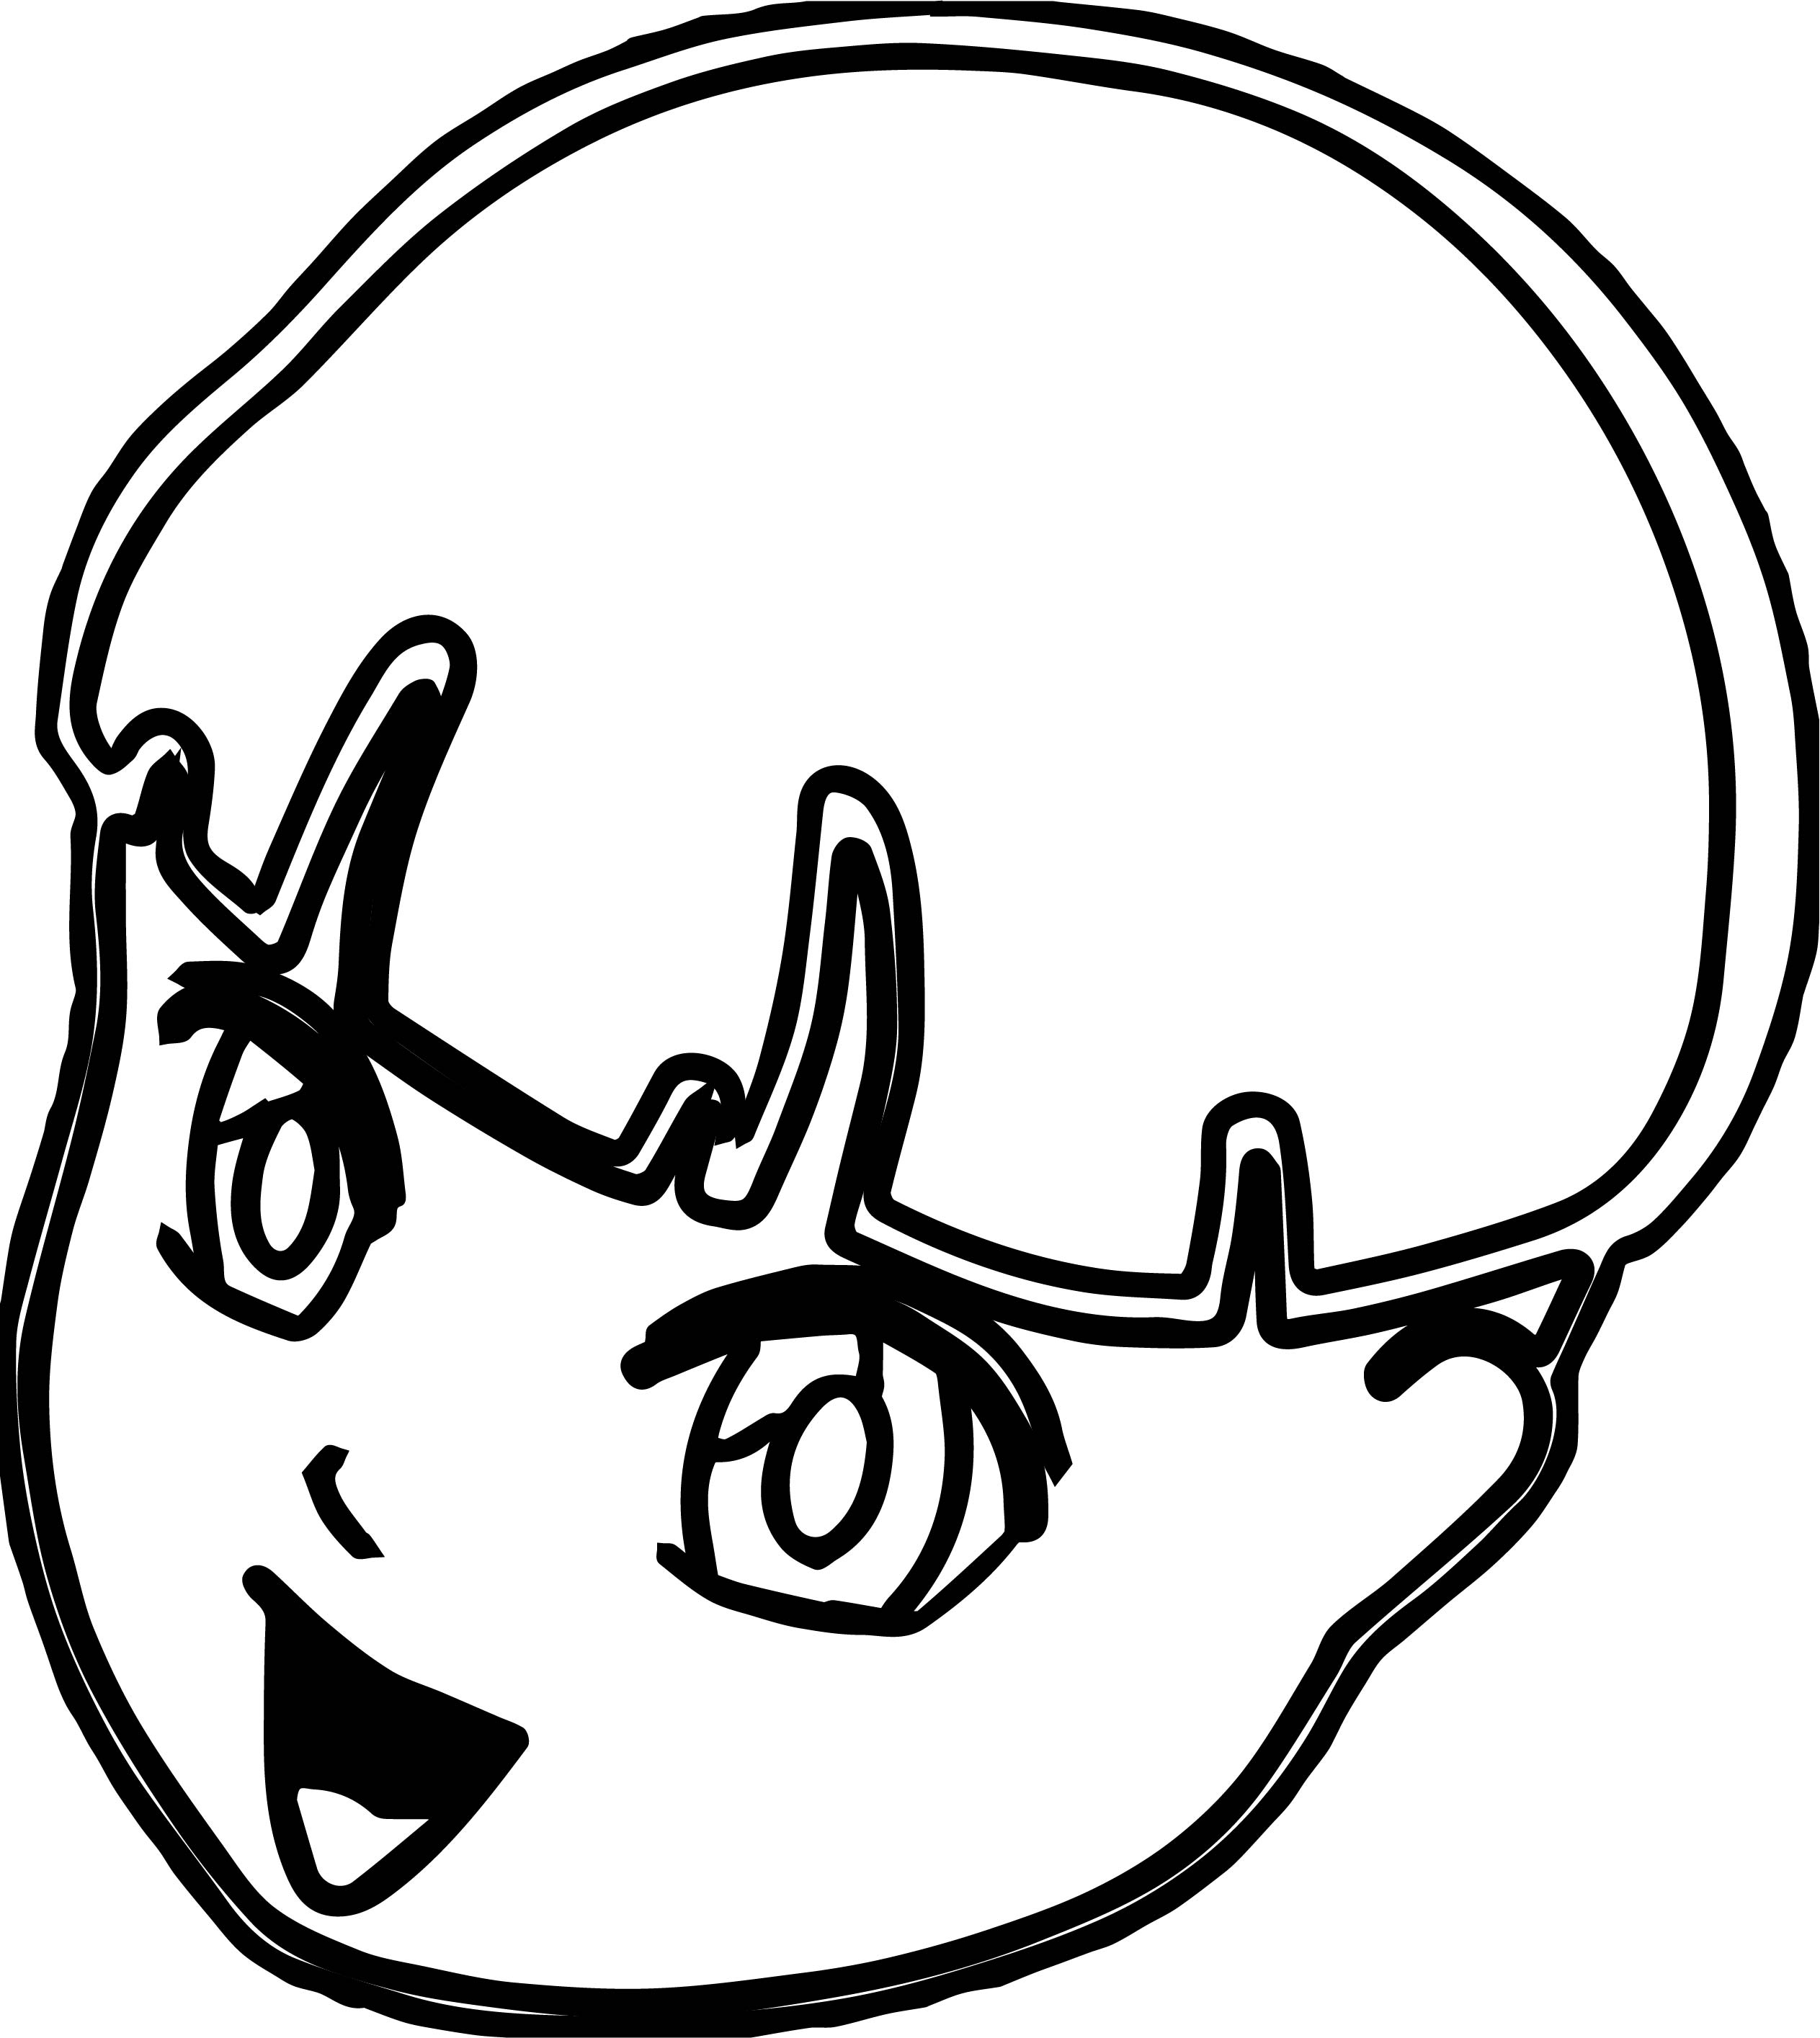 coloring outline of a boy boy smile face outline coloring page wecoloringpagecom boy a outline coloring of